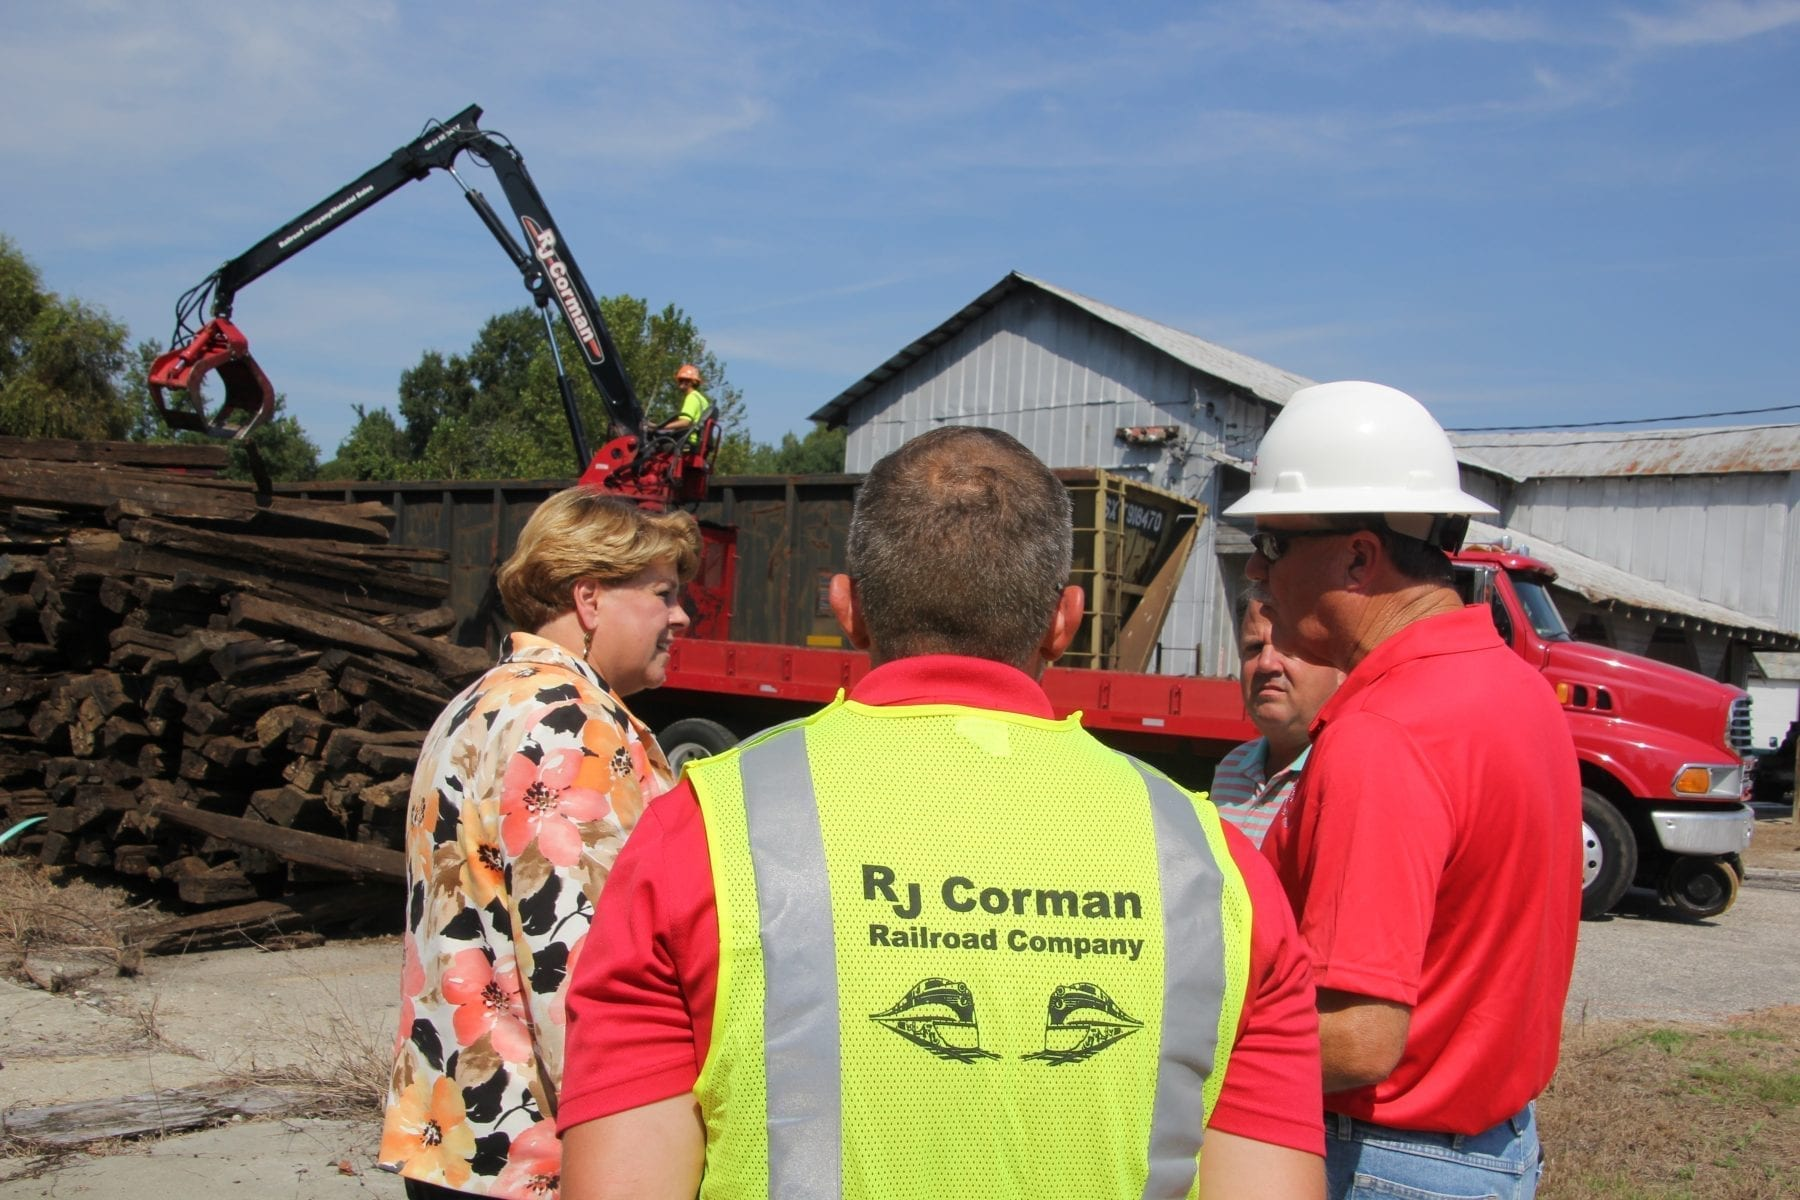 S&A gets first shipment of railroad ties – The News Reporter